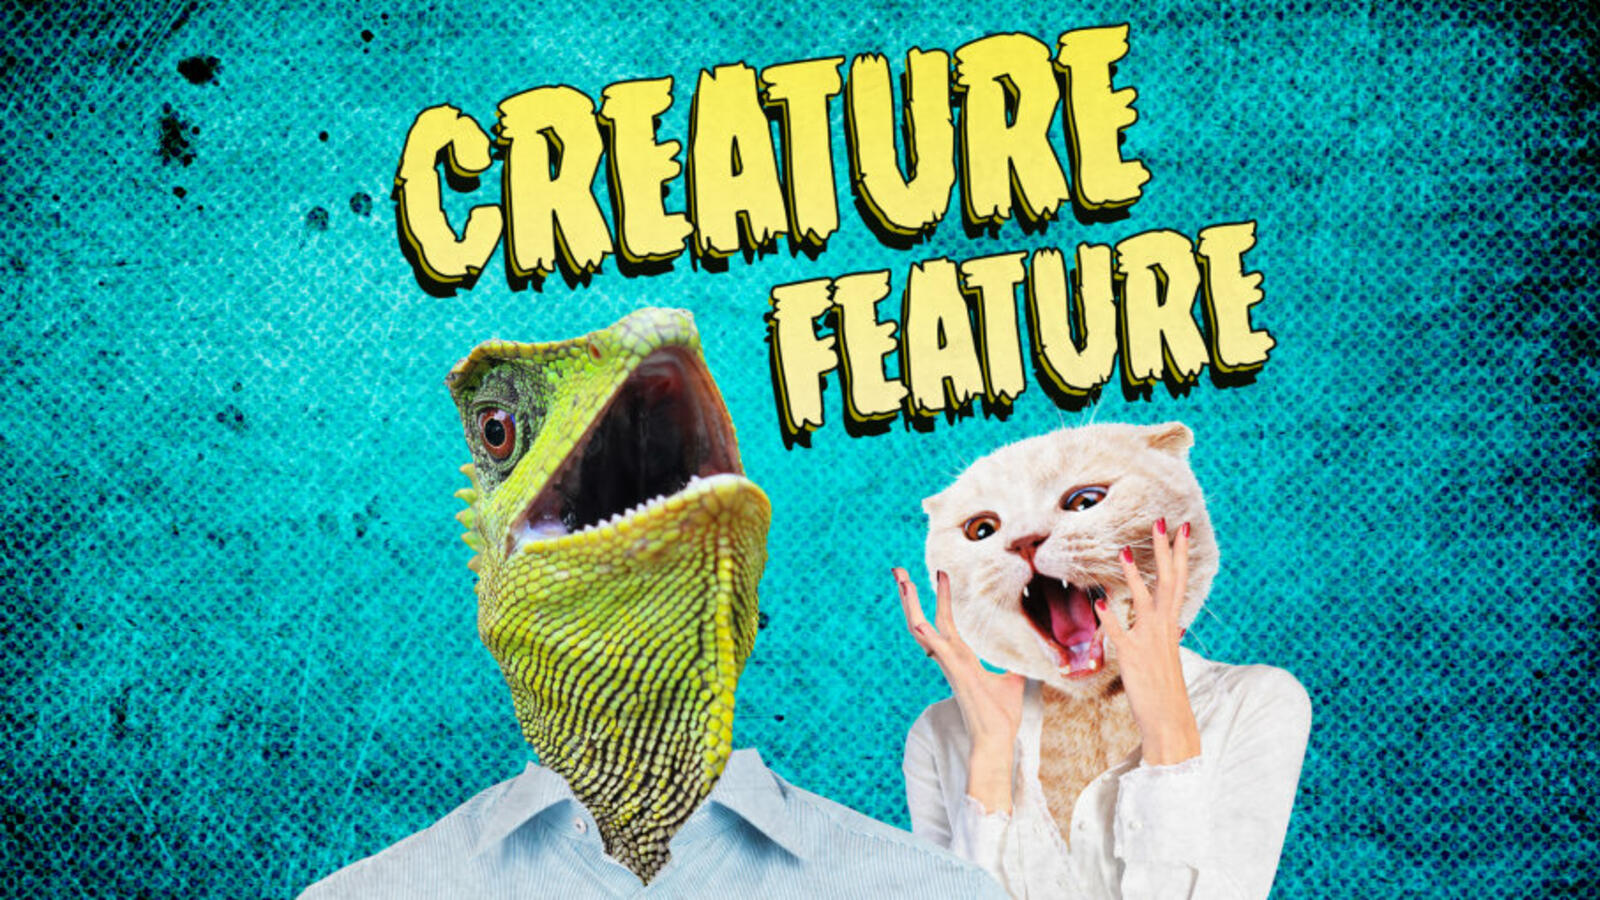 About Creature Feature